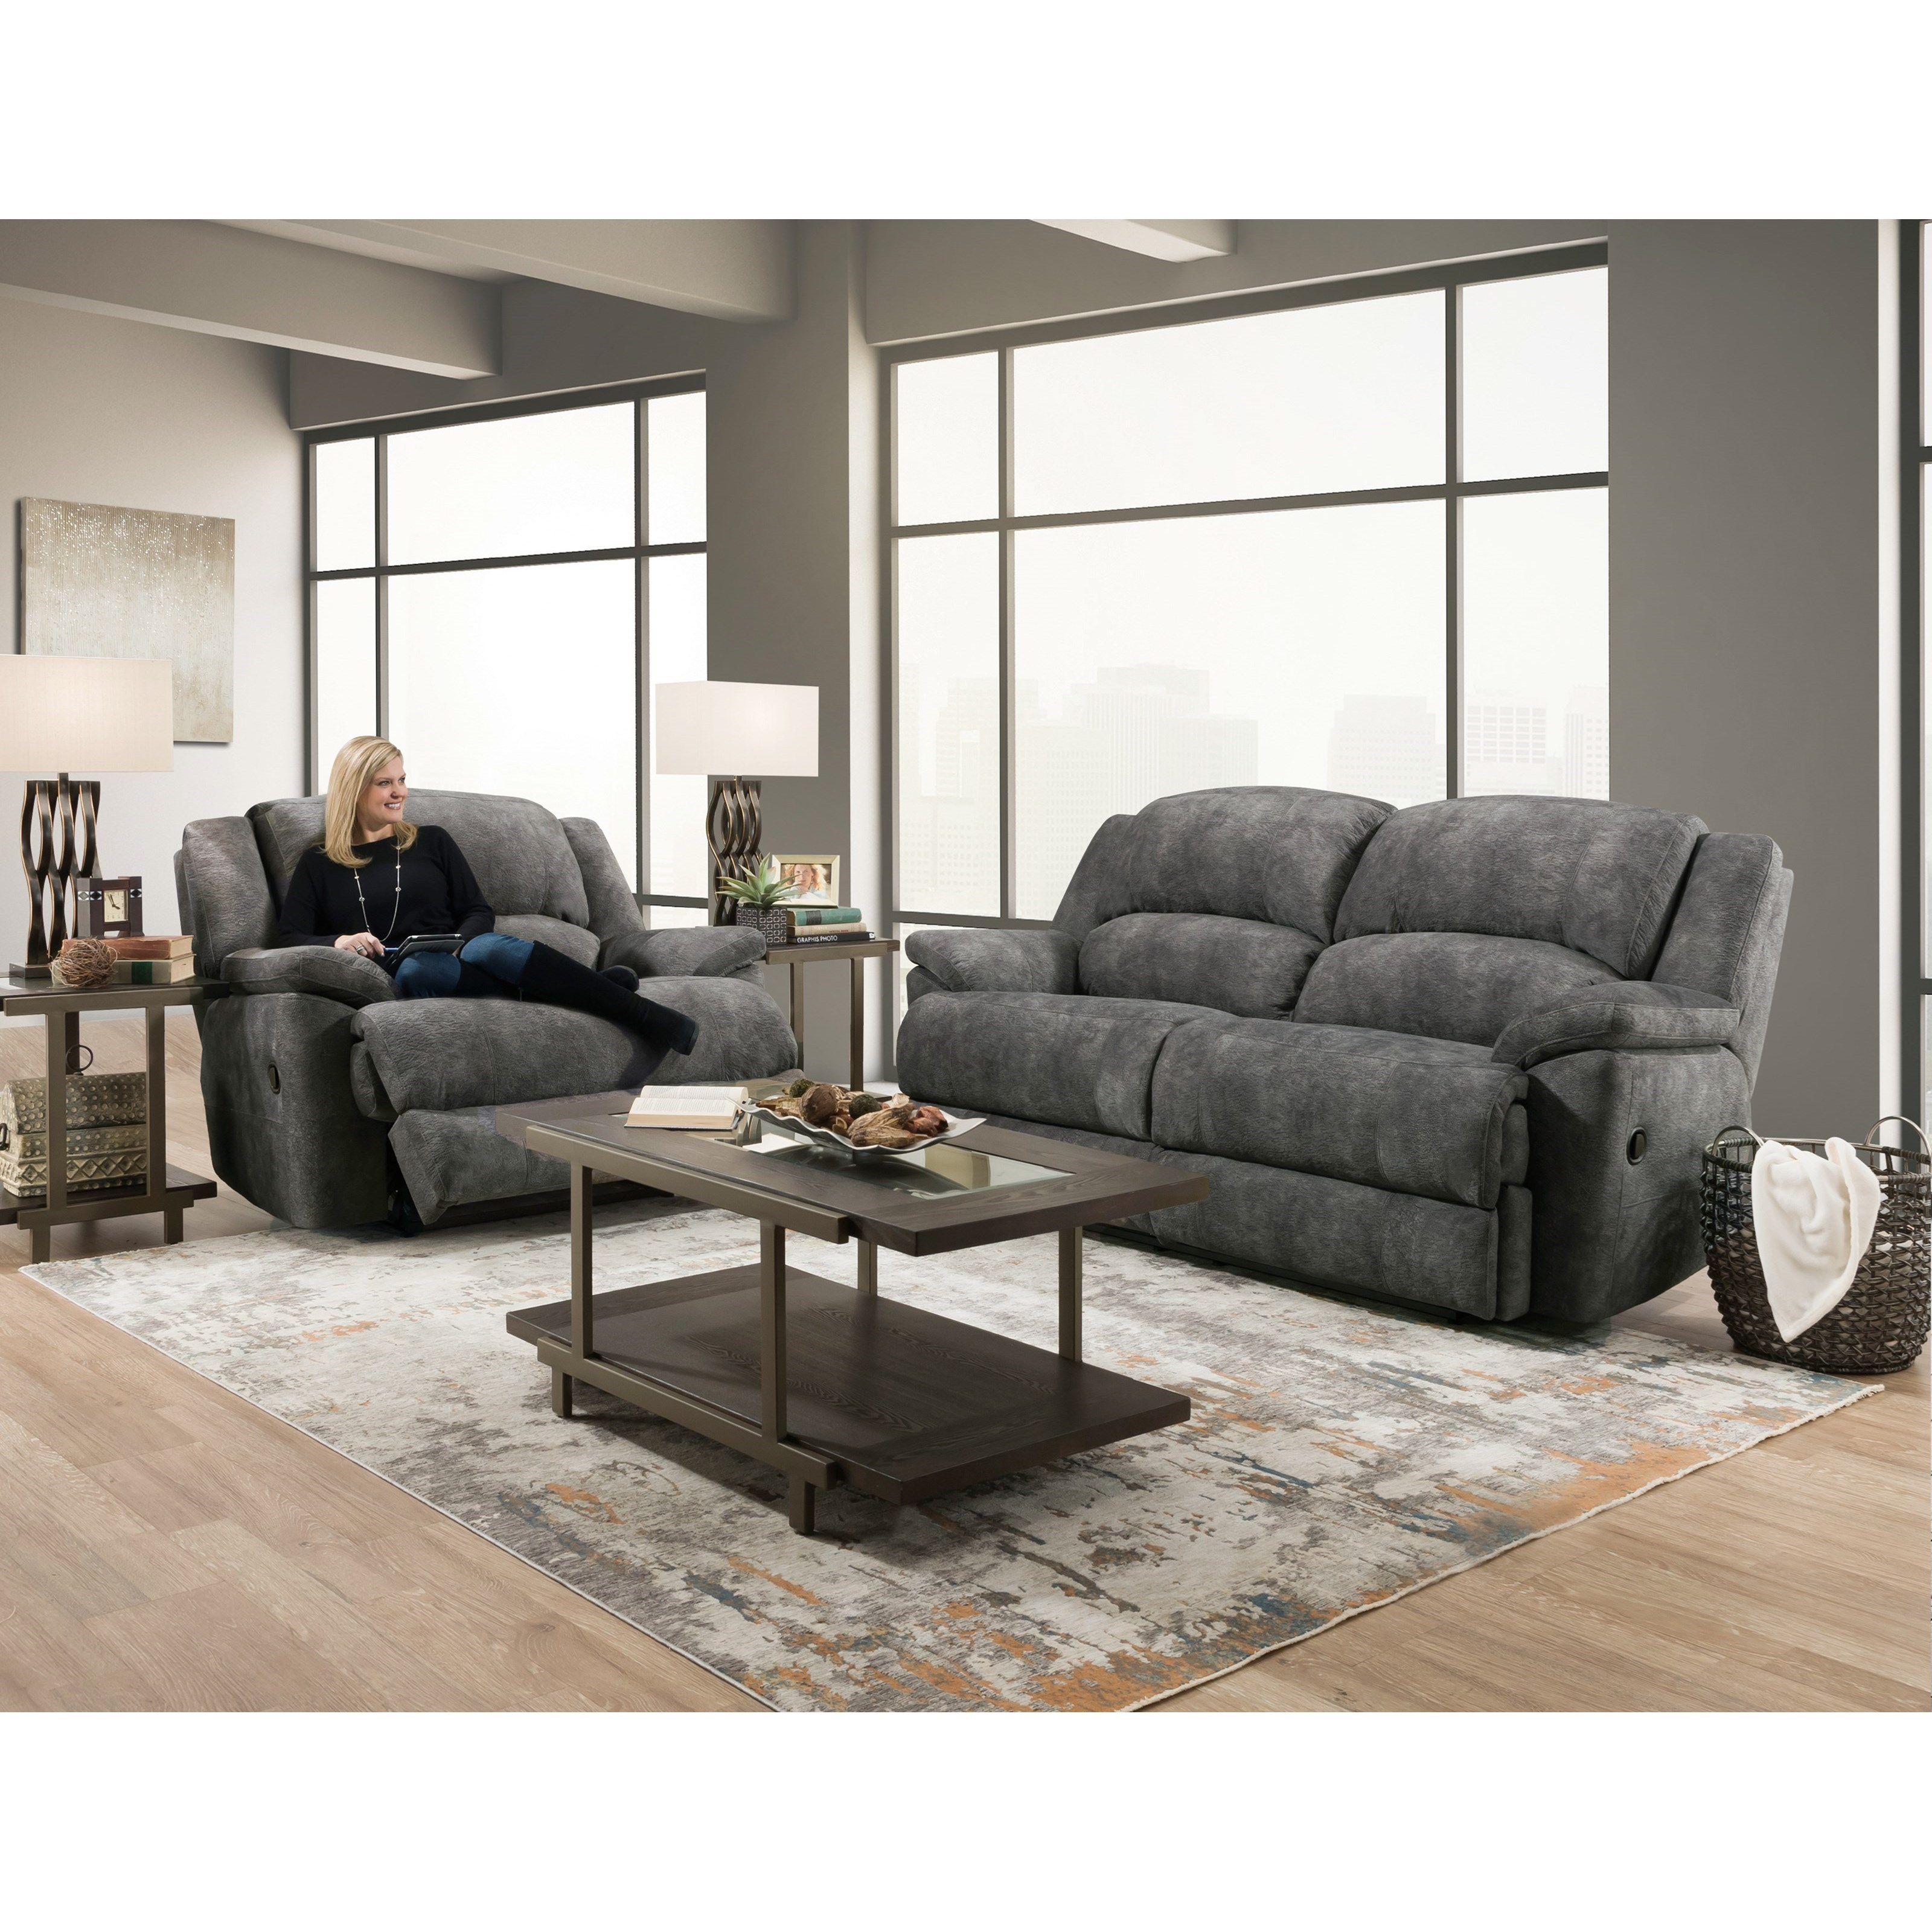 Bristol Power Reclining Living Room Group by HomeStretch at Standard Furniture